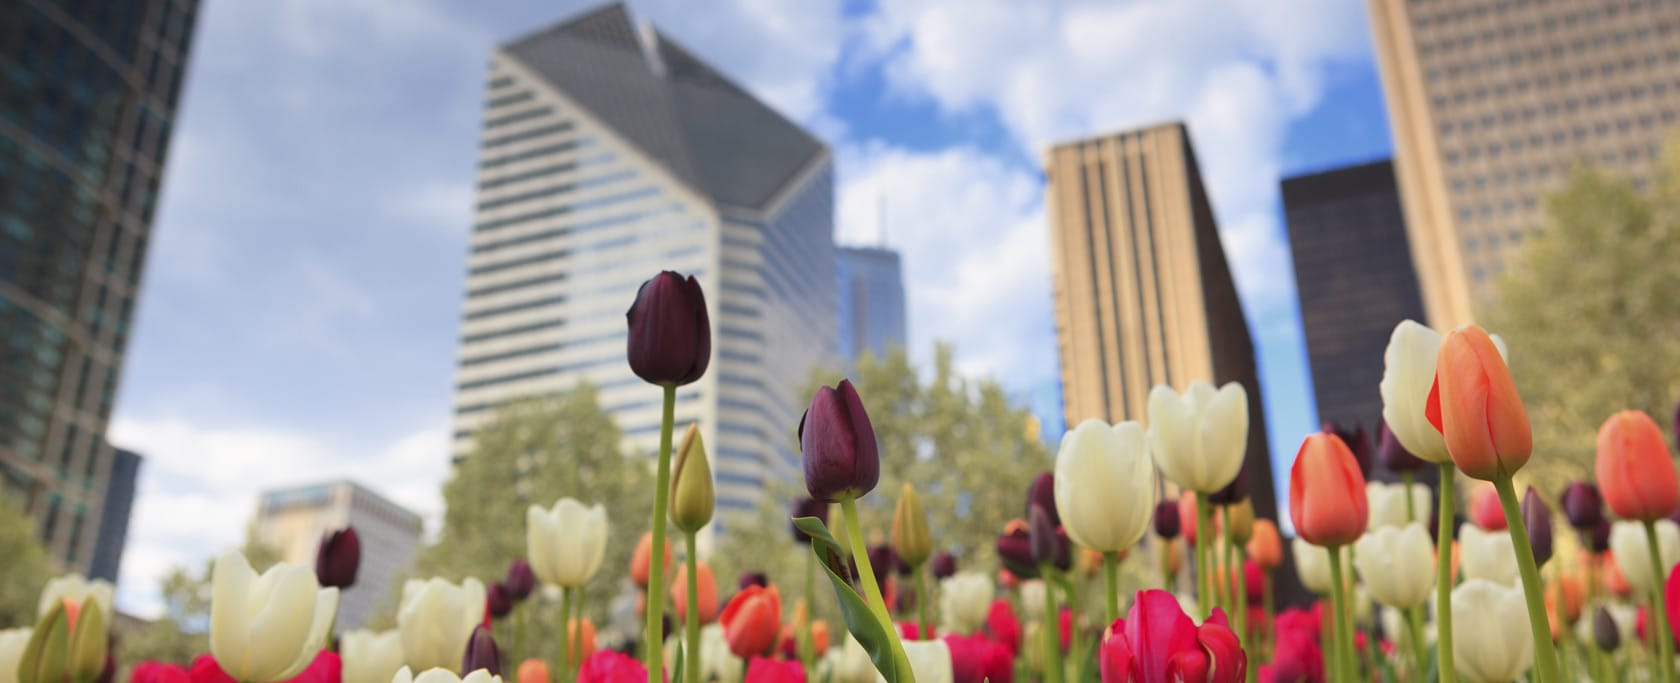 Flowers and city scene